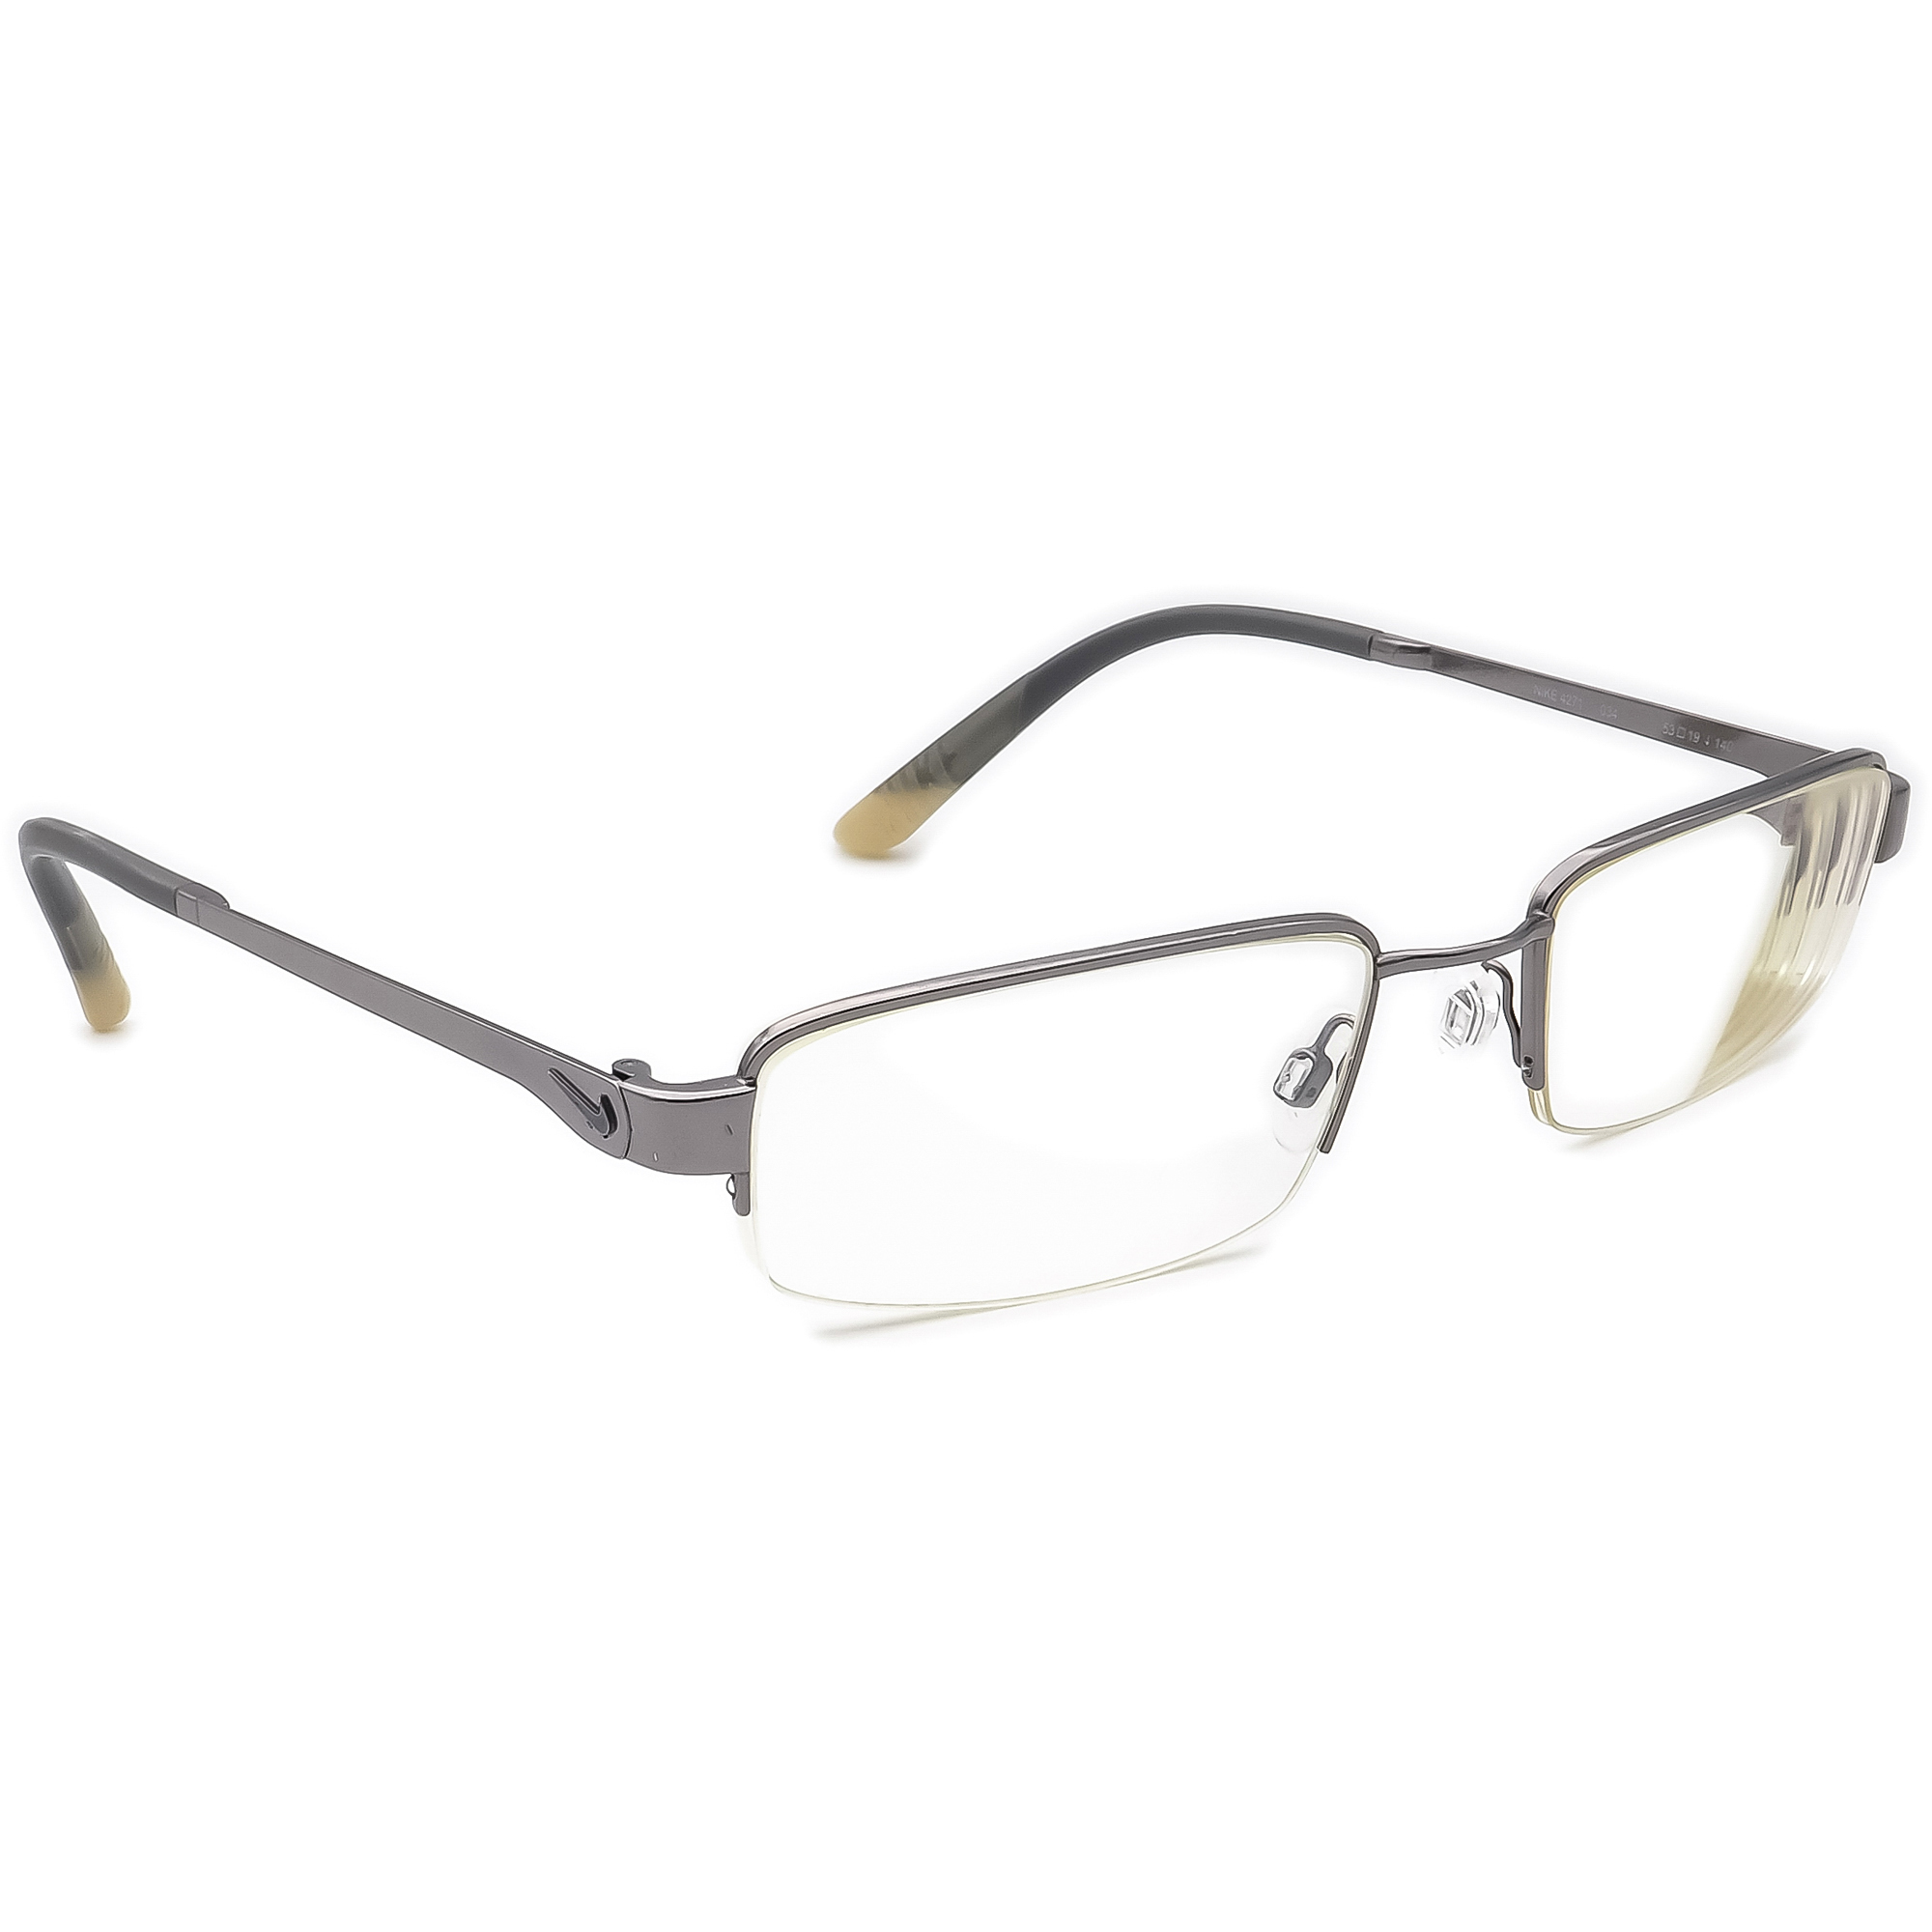 Nike 4271 034 Flexon Eyeglasses